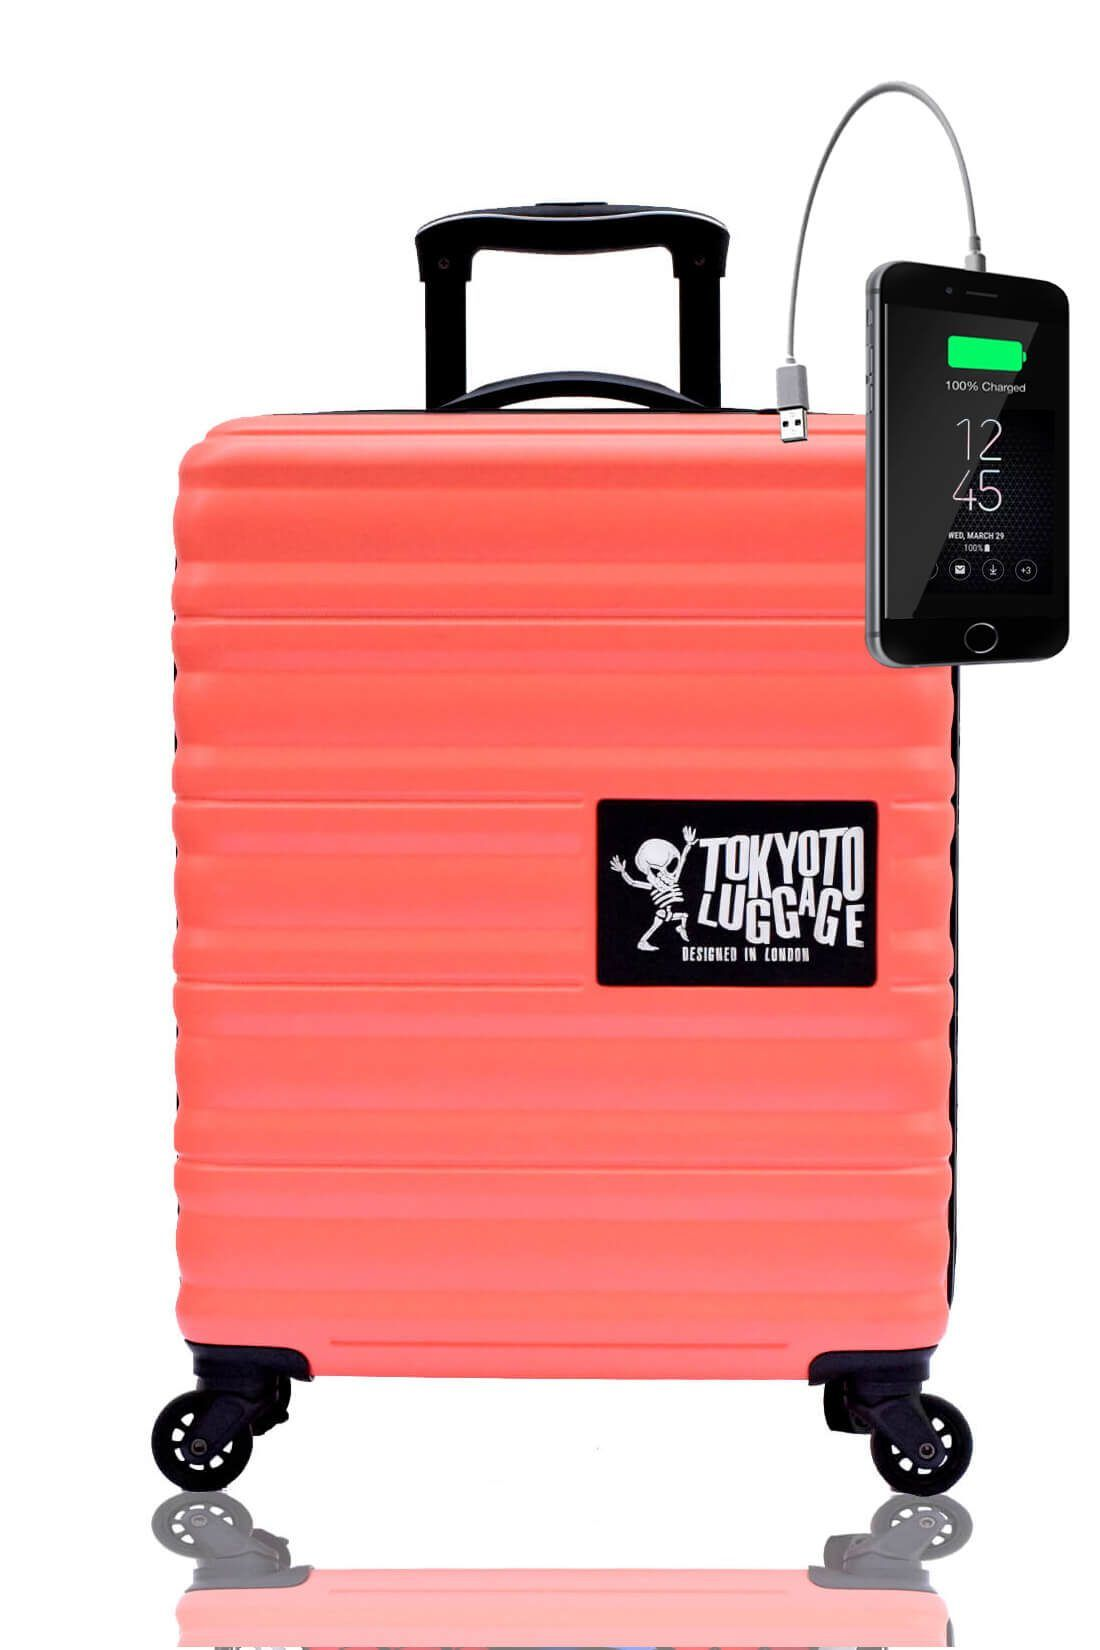 ABS Kids Hand Trolley Cabin Luggage Suitcase Online Powerbank USB TOKYOTO CORAL 3